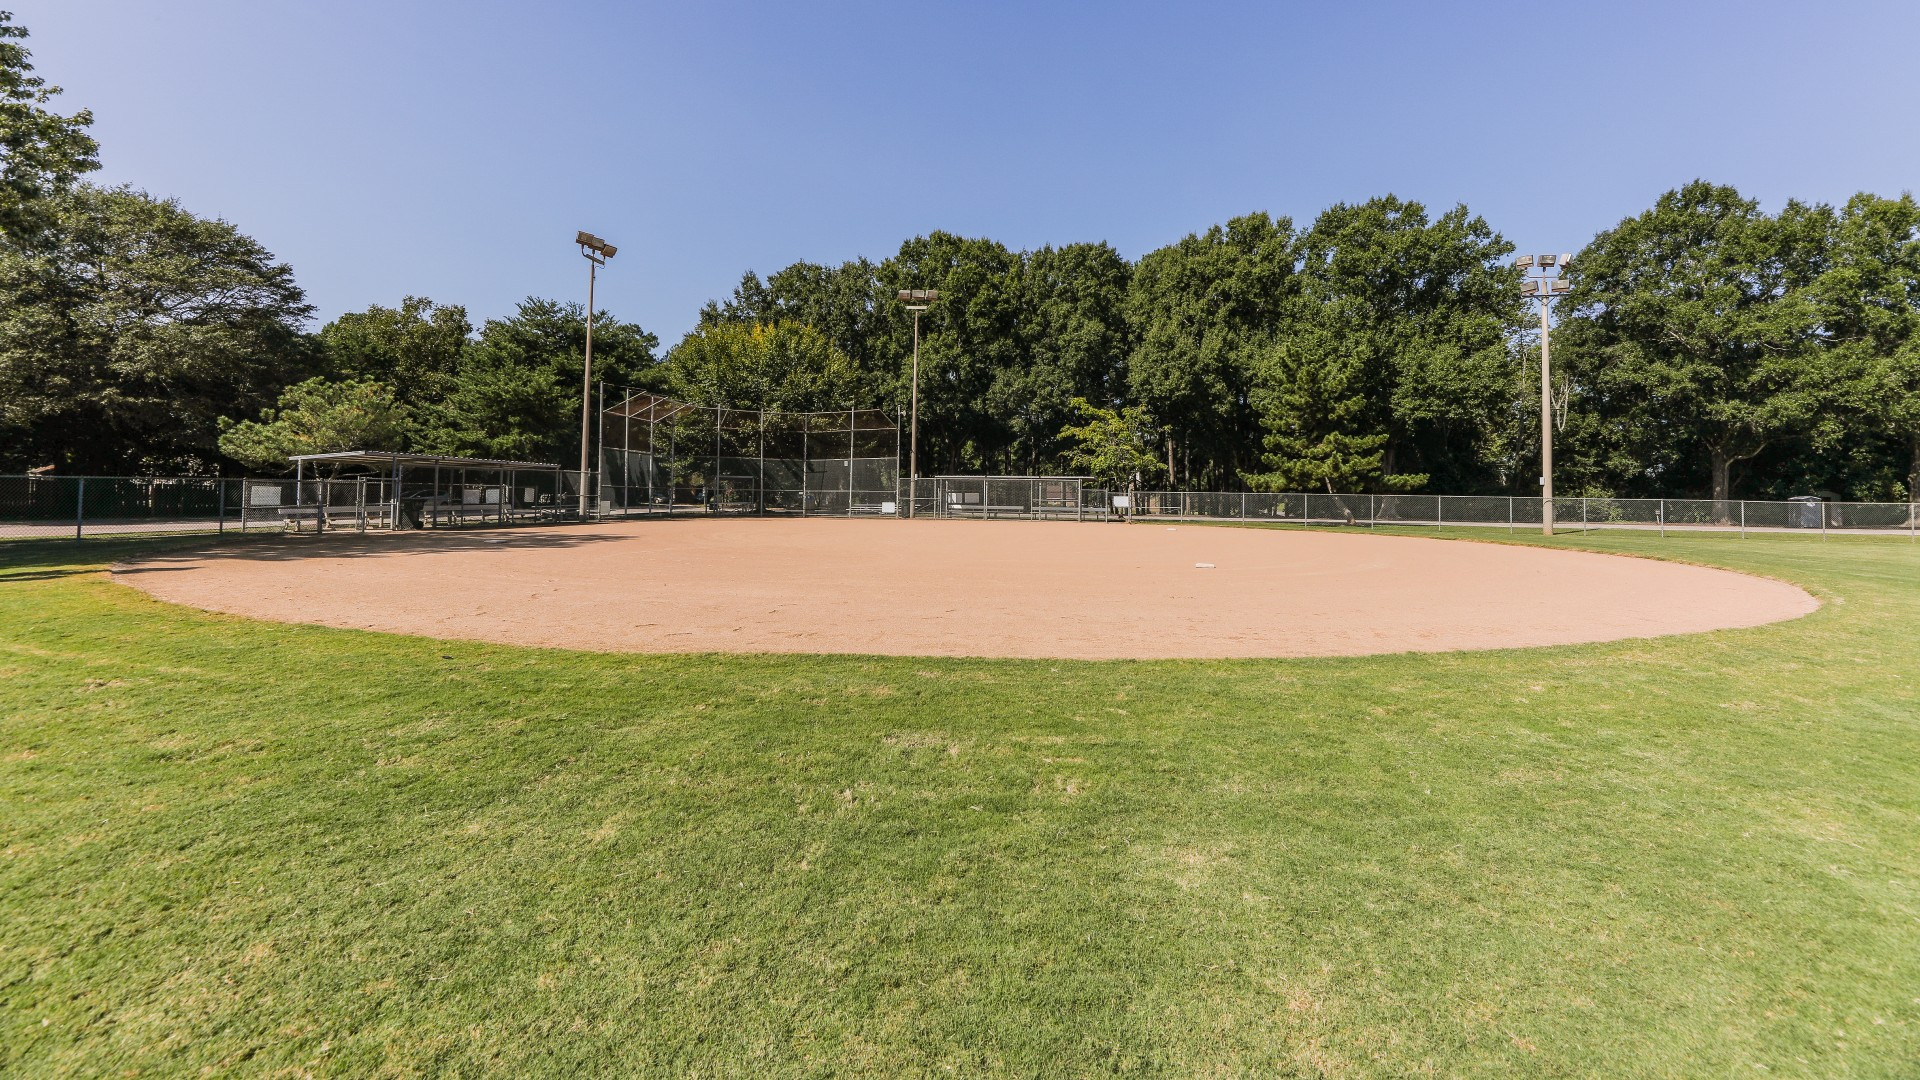 A second softball field with backstop